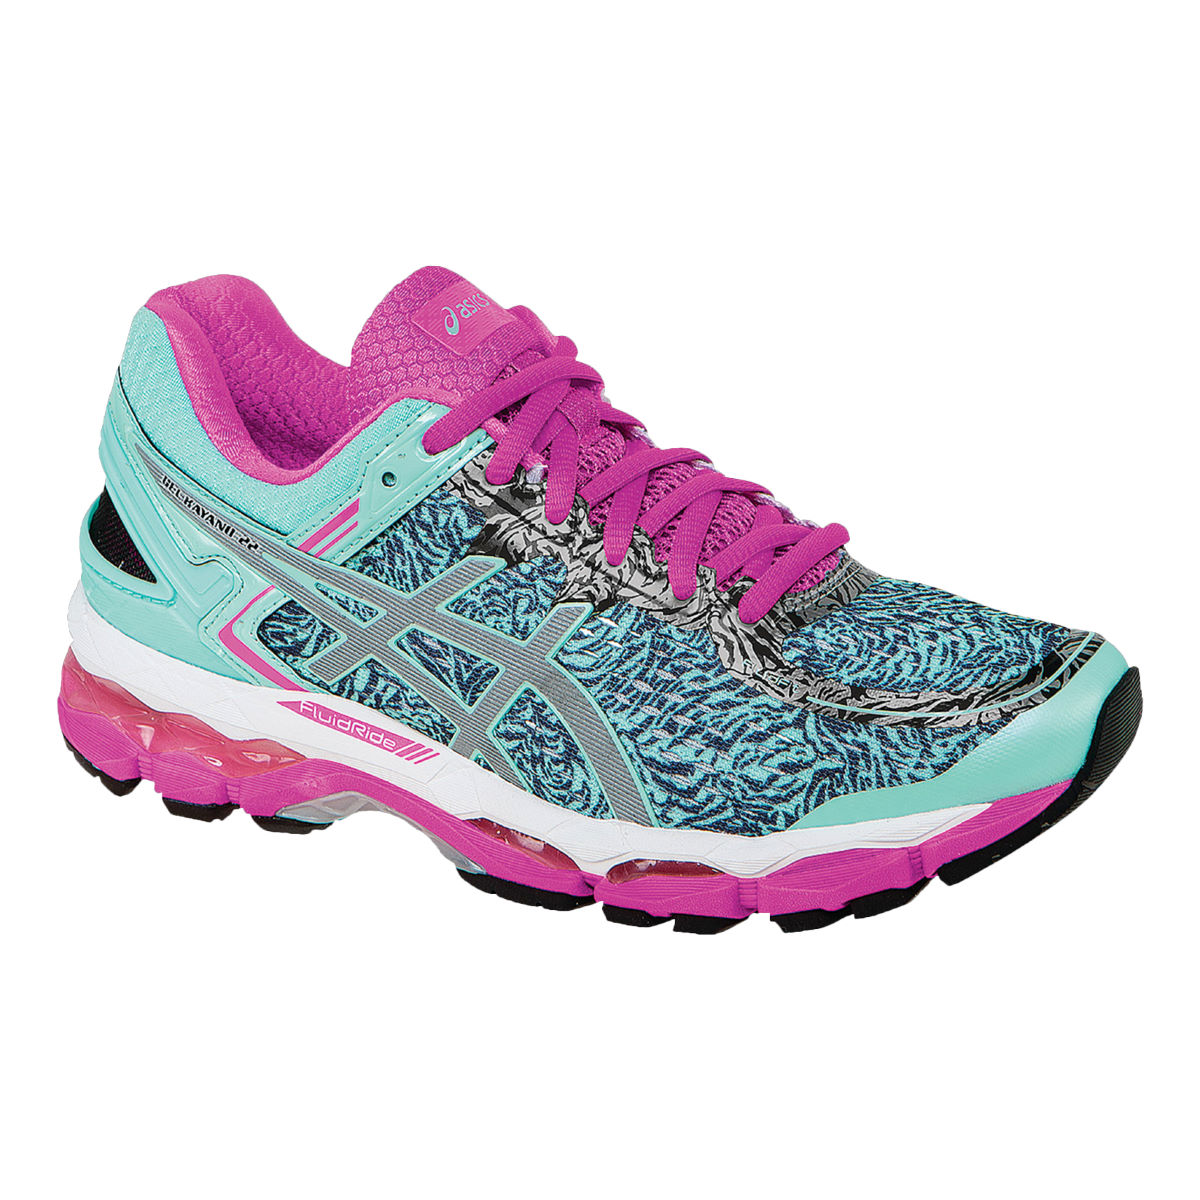 Stability Shoes Uk